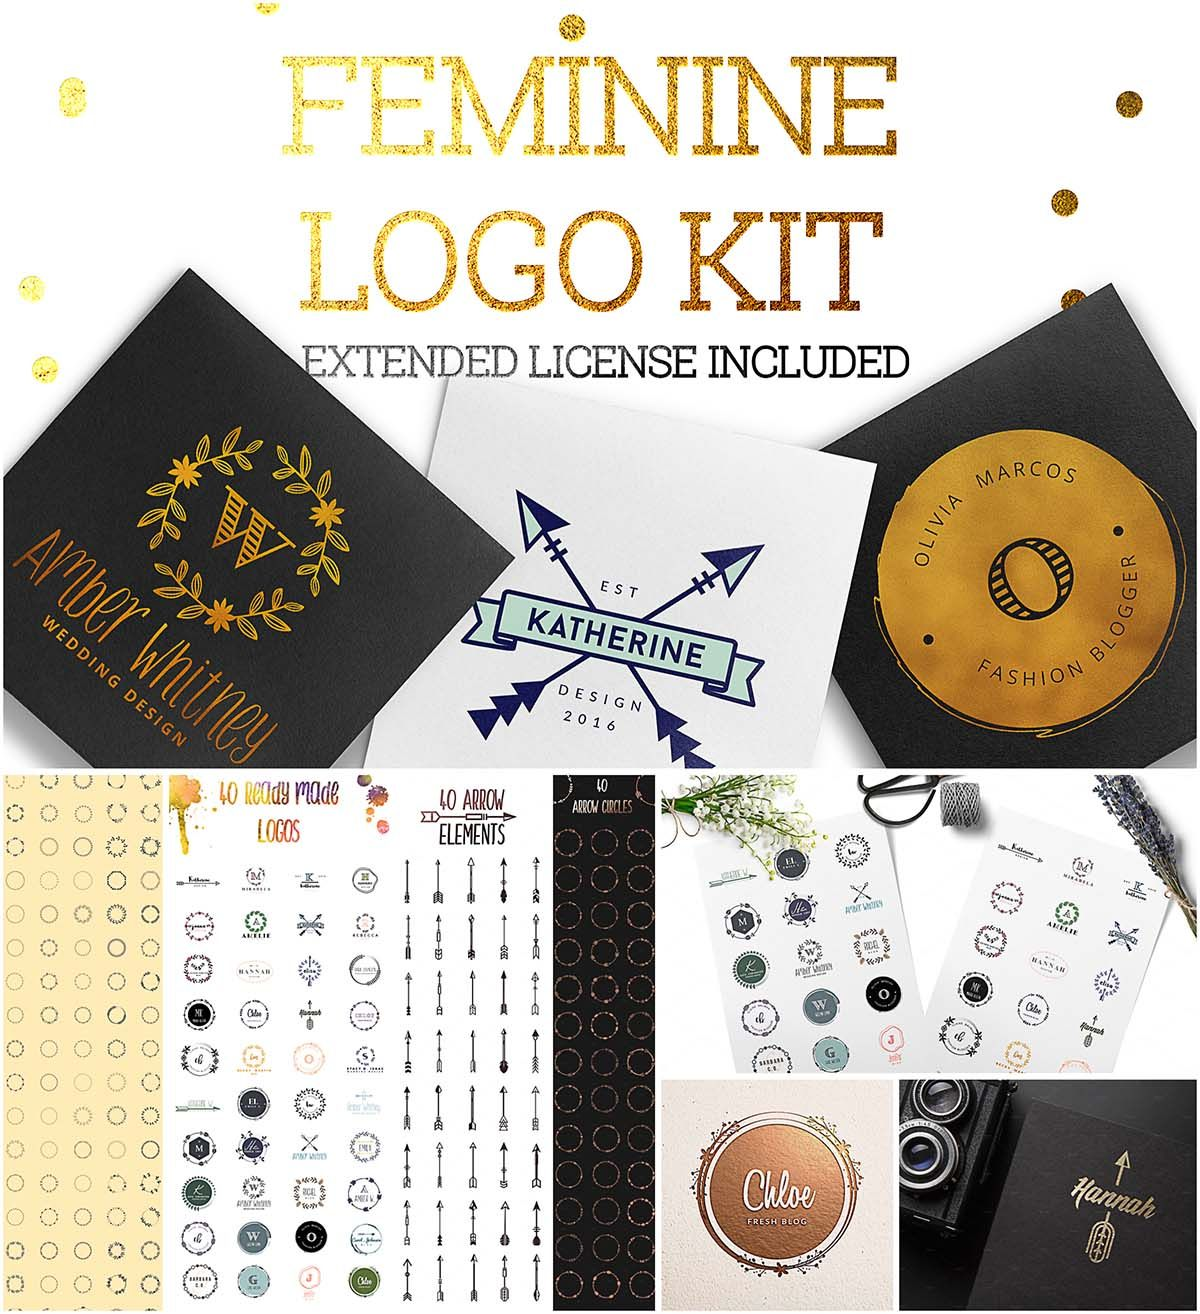 feminine logo creation kit logo creation and mock ups for set of 200 feminine logo elements arrows circles textures etc for creating unique branding identity for file format psd ai eps for